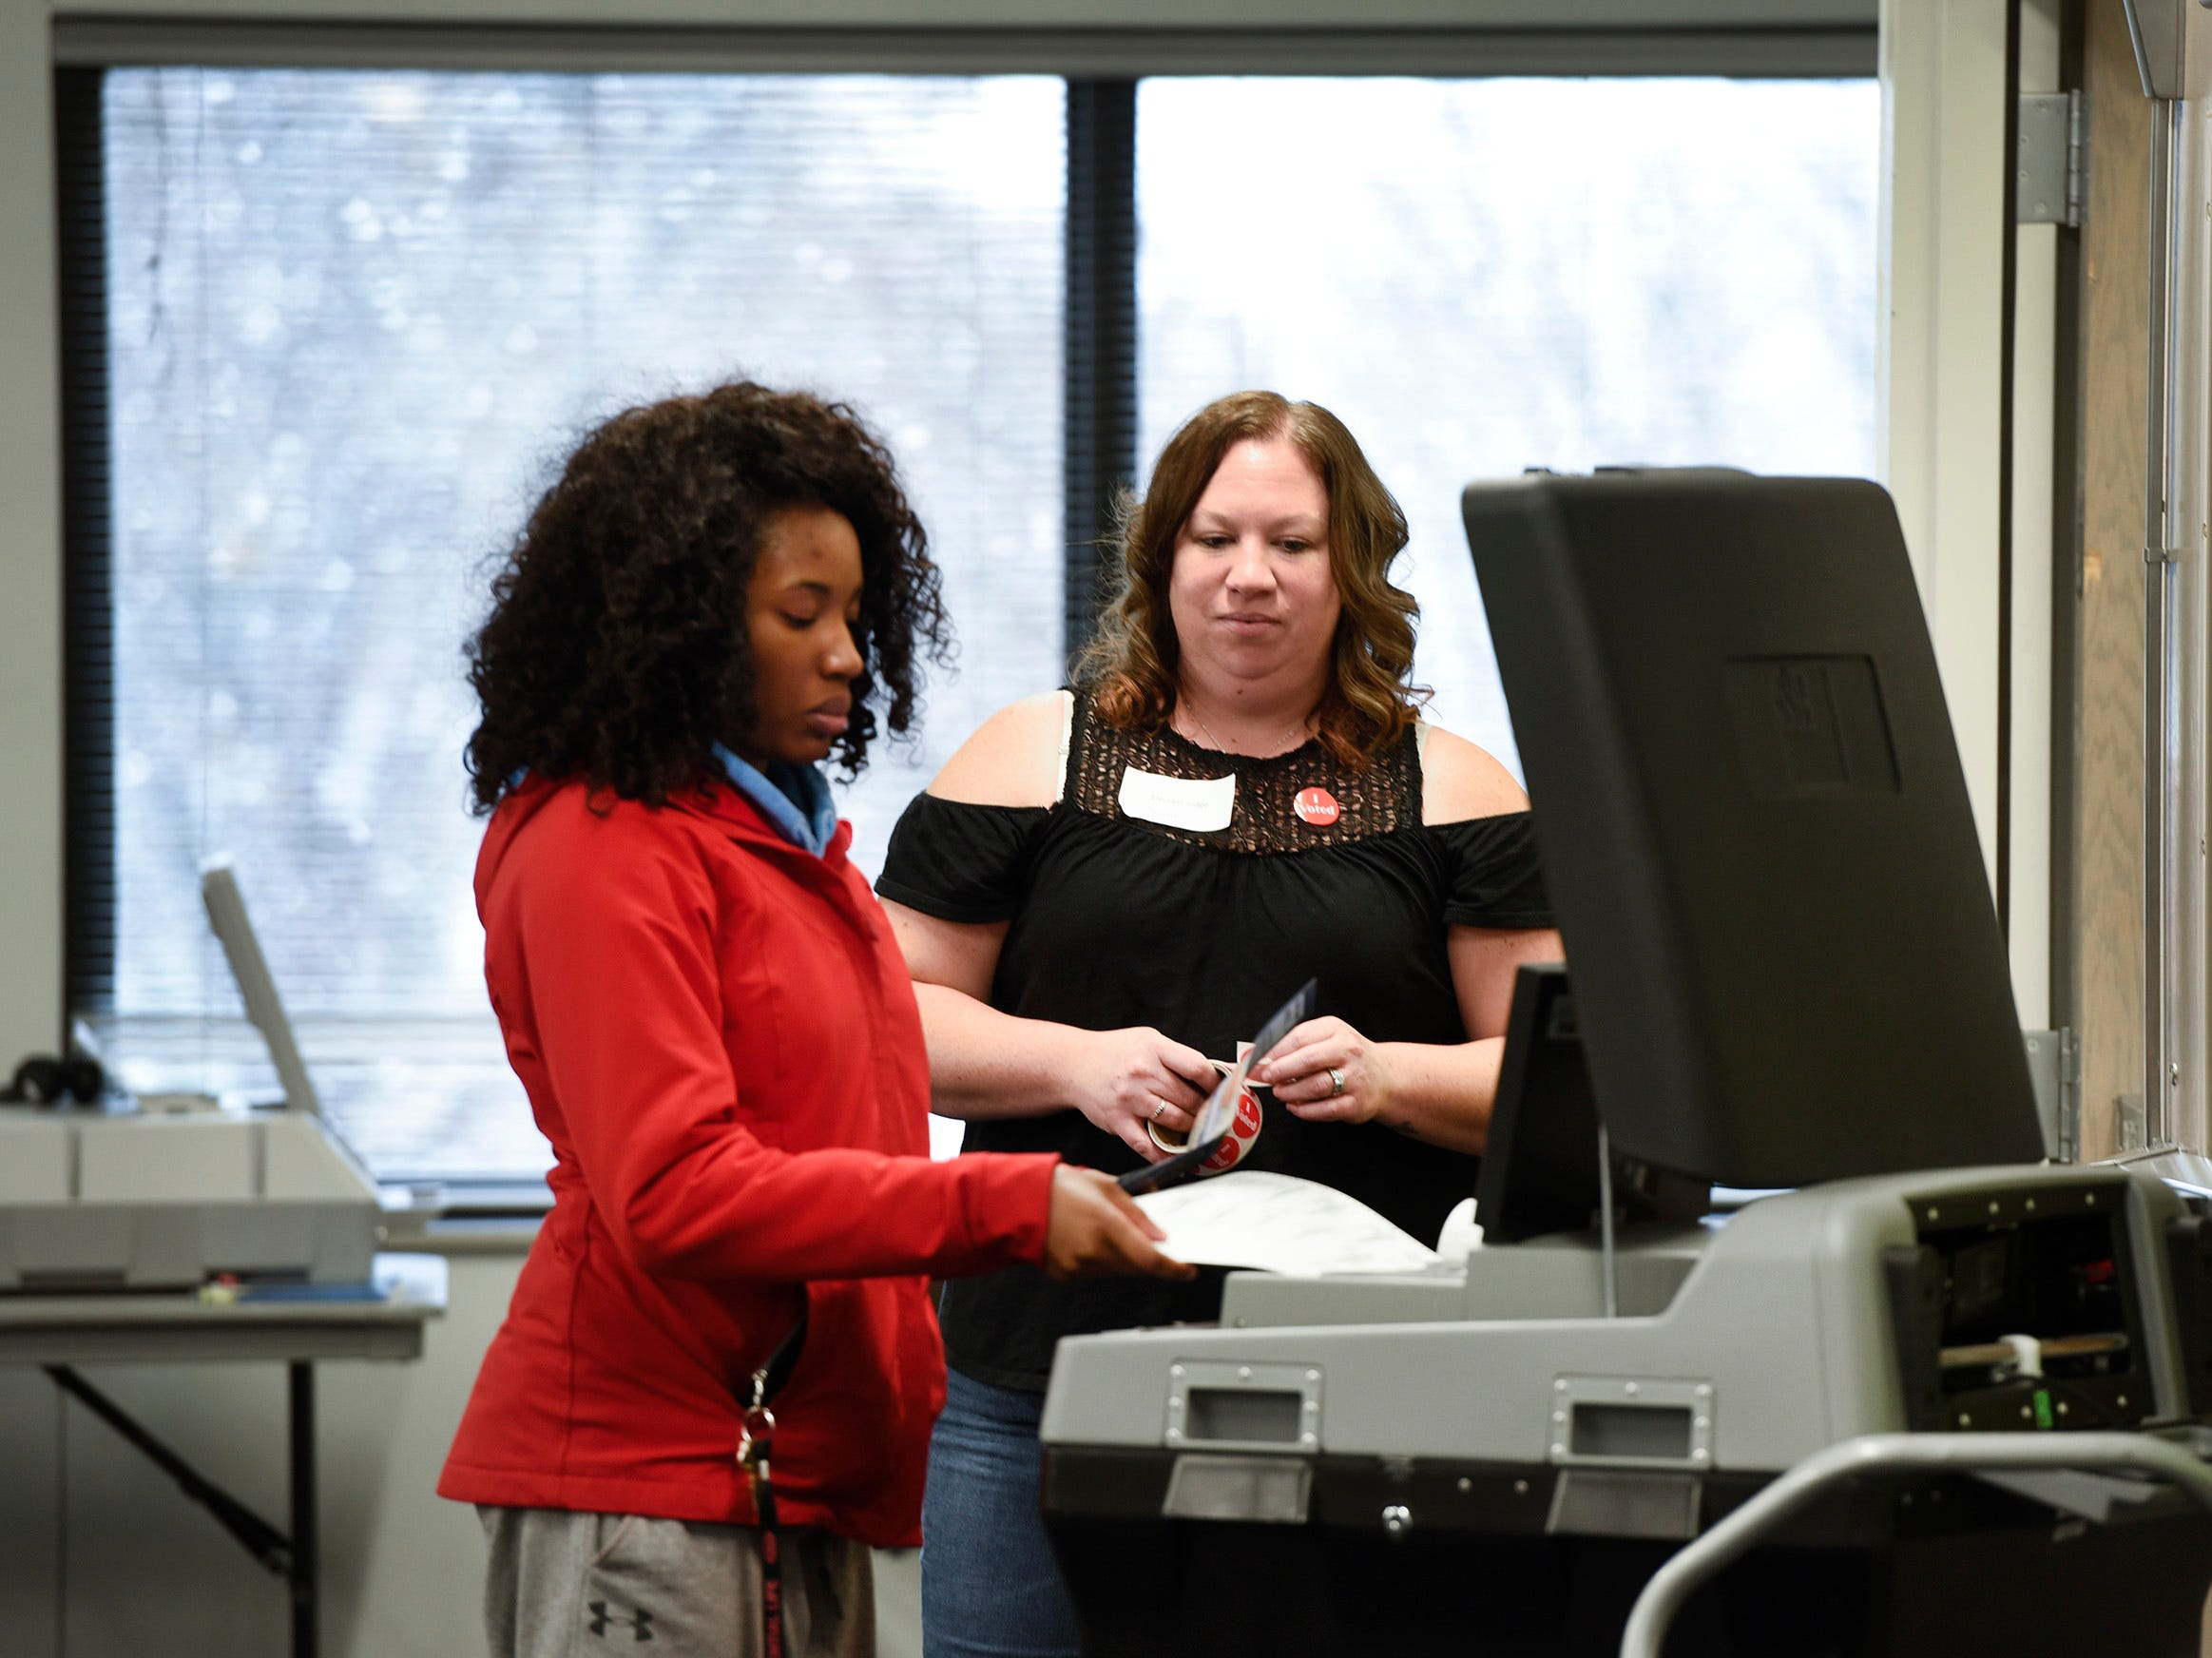 St. Cloud State University student Ellen Nouneu gets her ballot counted Tuesday, Nov. 6, in Atwood Memorial Center as election judge Susan Frank-Perez watches.